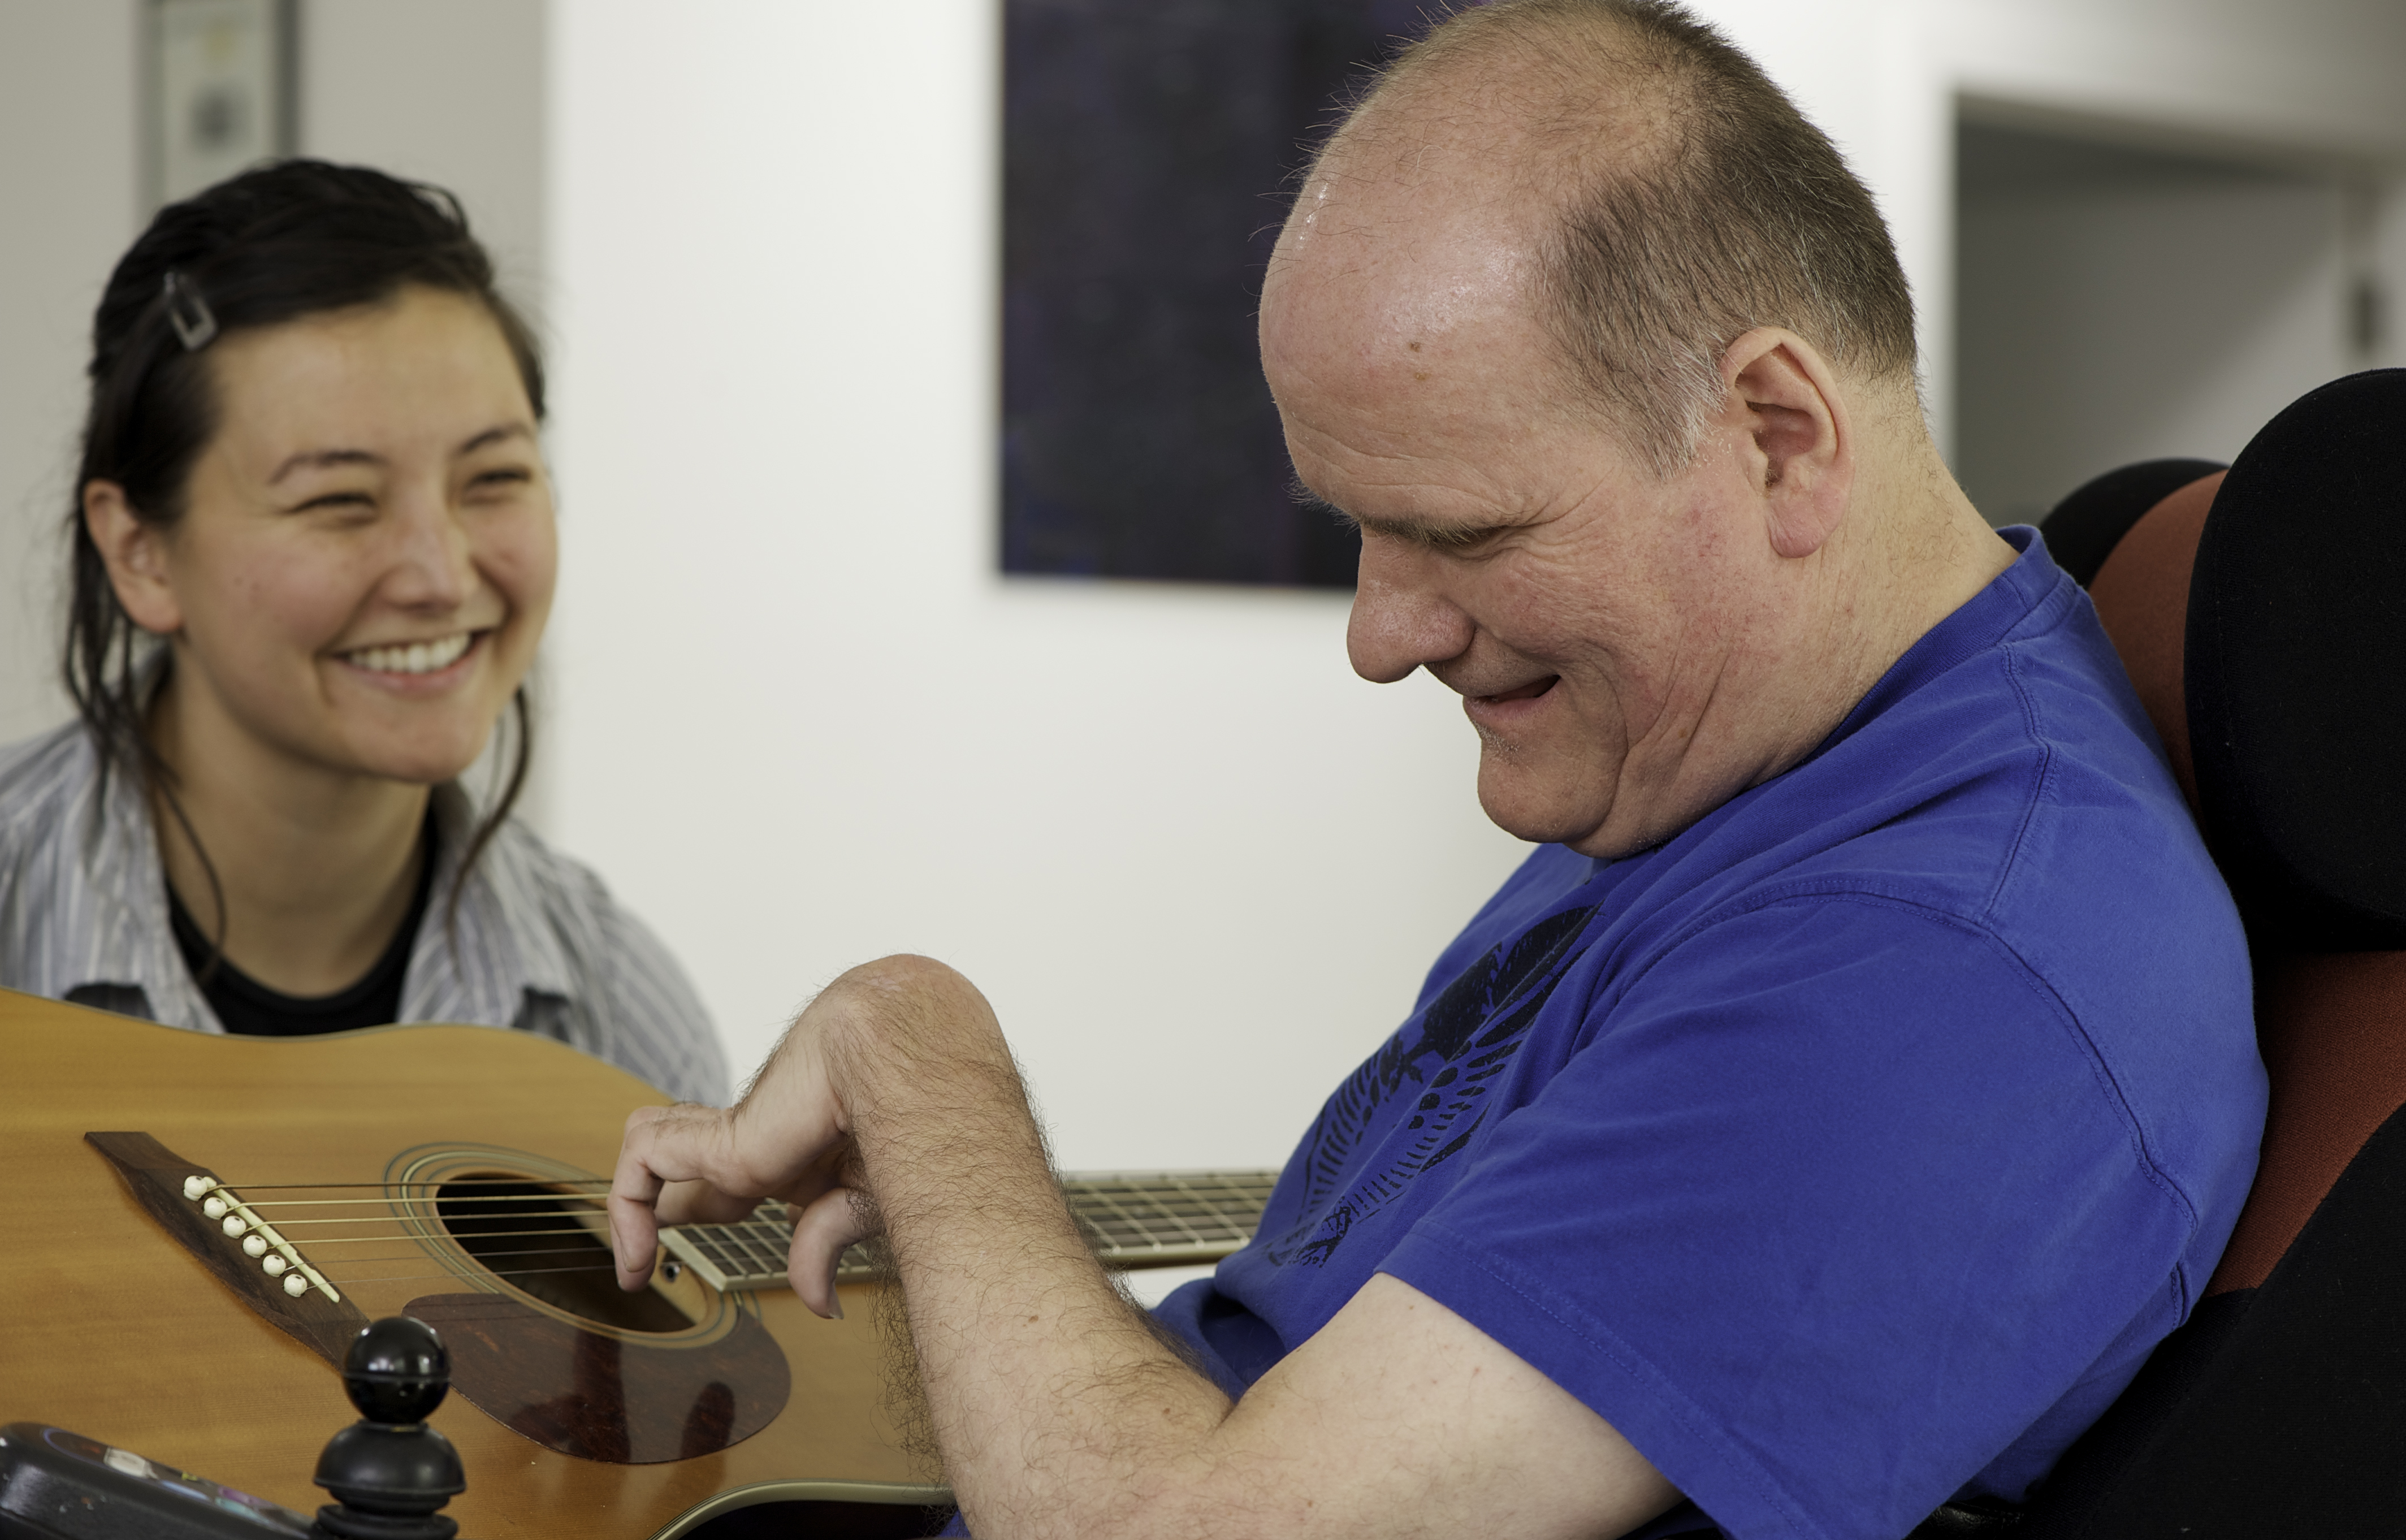 Music and Occupational Therapy